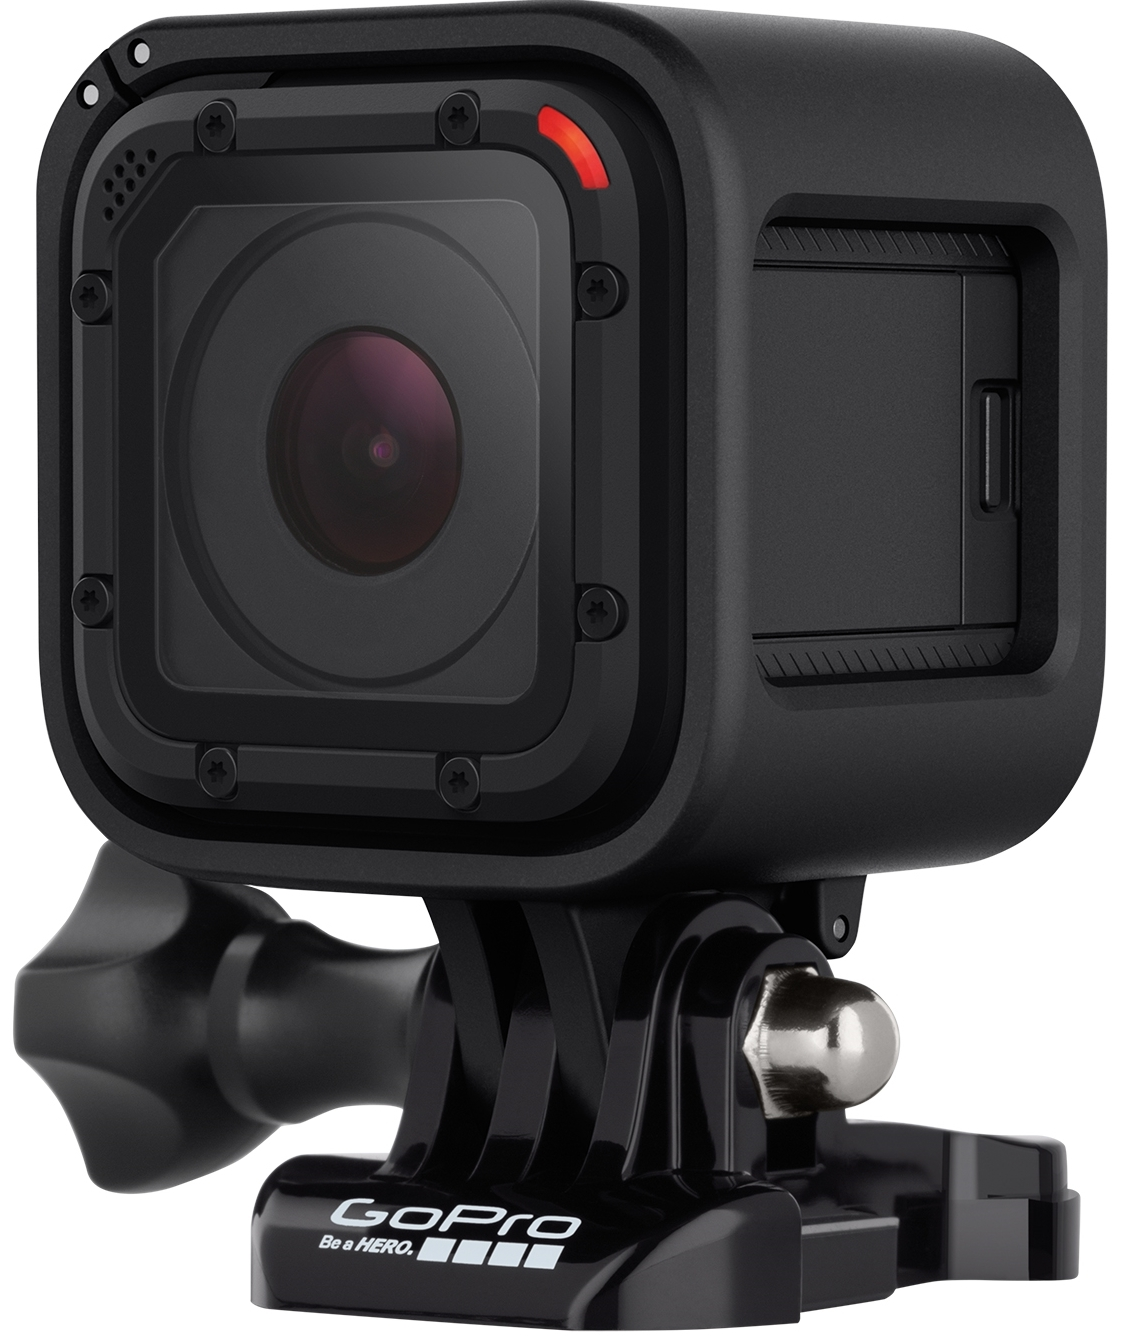 GoPro HERO4 Session, $300